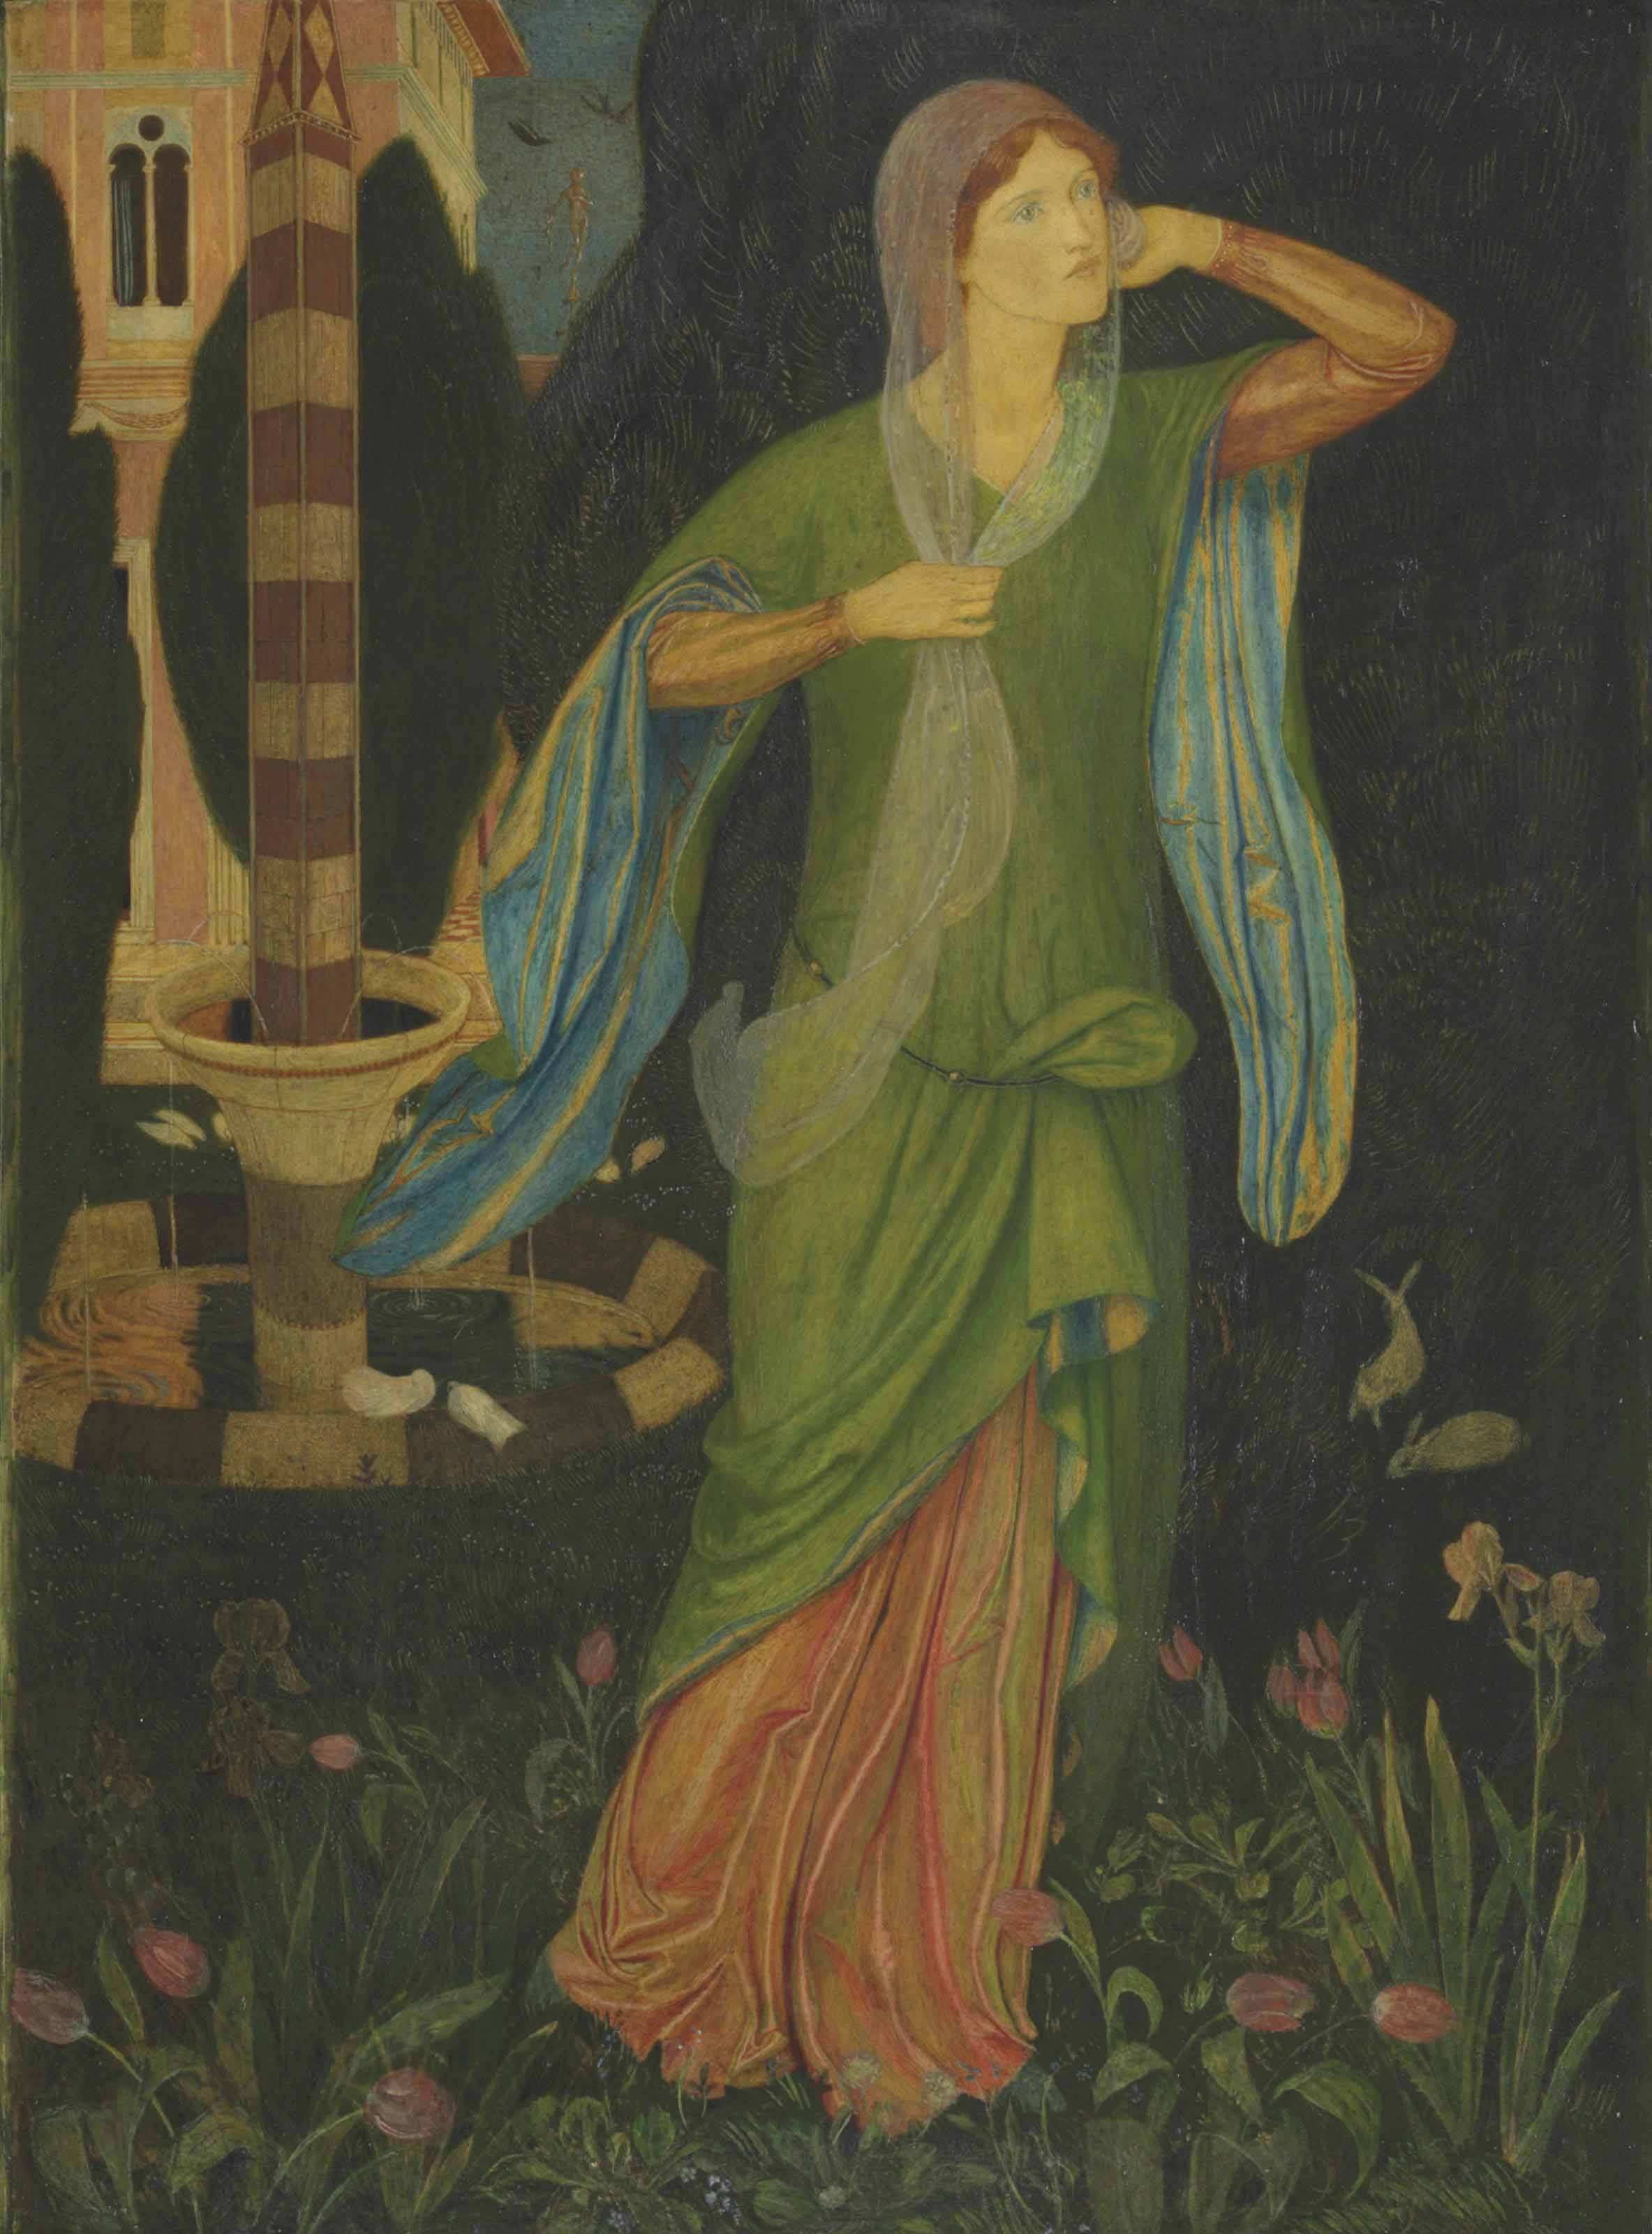 Psyche 'And rose to enter the fair golden place; But then remembering all her piteous case She turned away, lamenting very sore'  (William Morris's 'Story of Cupid and Psyche', The Earthly Paradise)